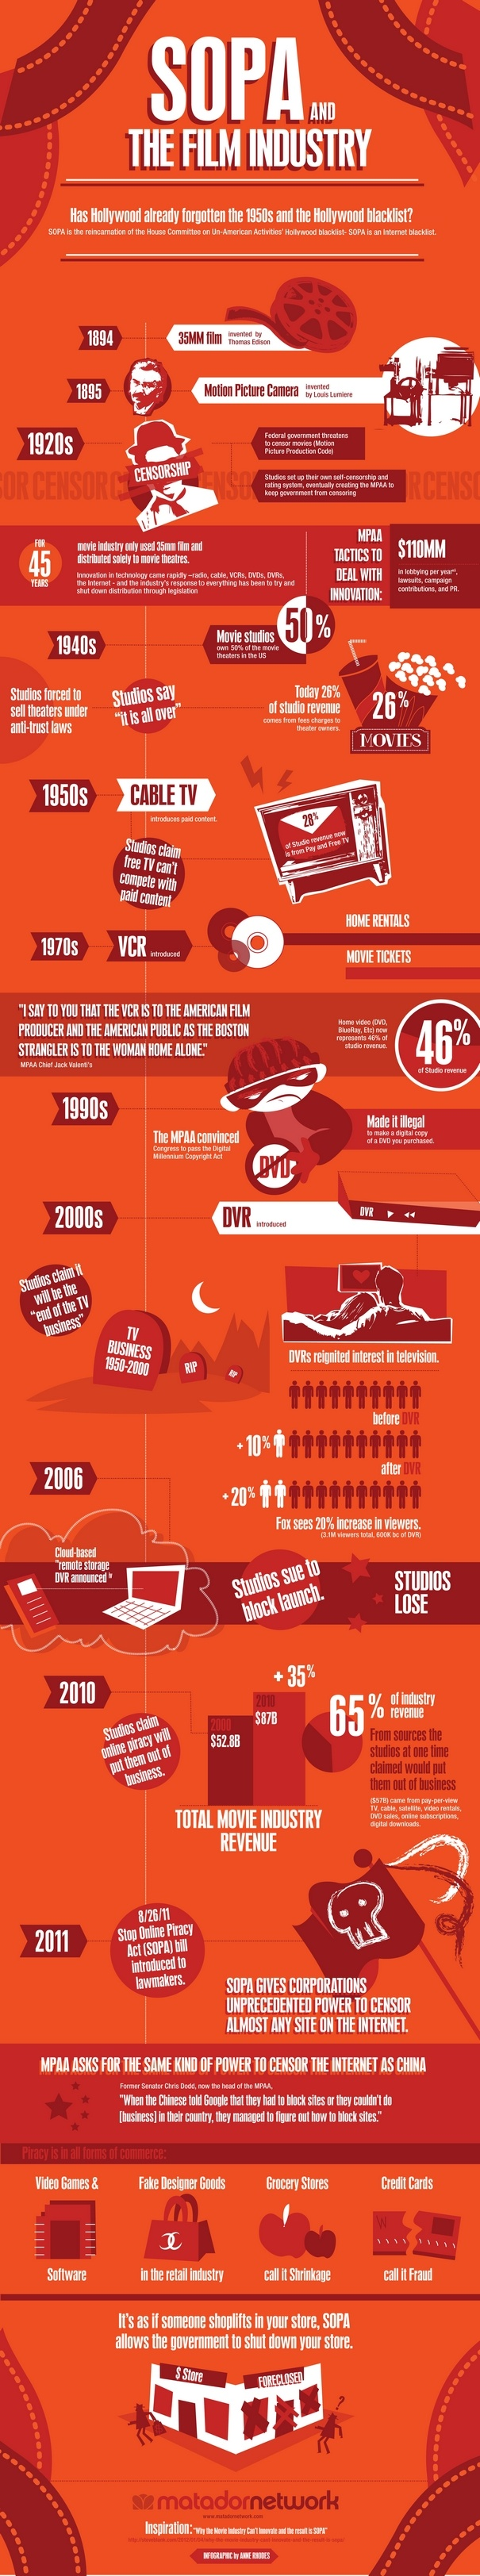 SOPA and The Film Industry Infographic